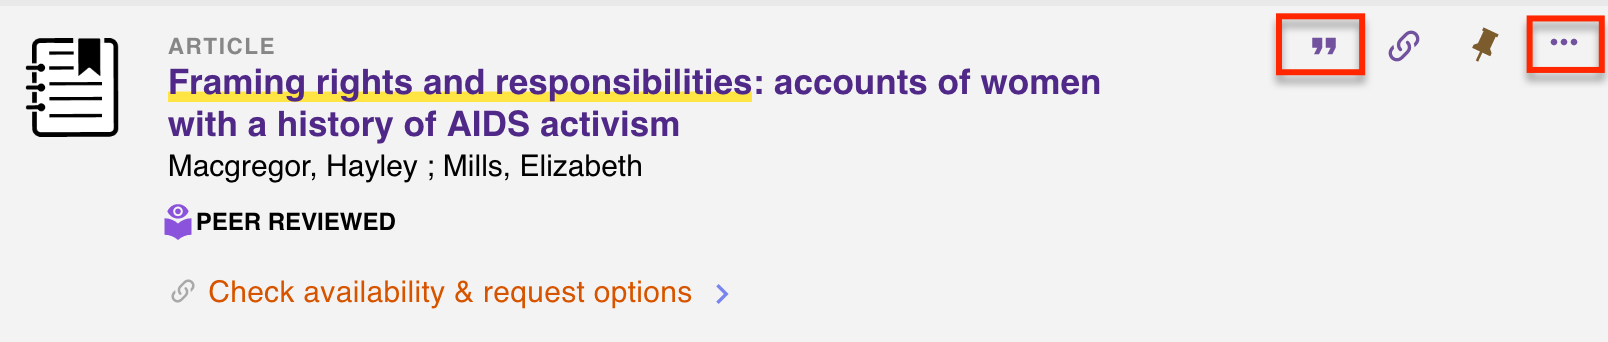 view of article in UW Libraries catalog. In righthand corner of item, a red box is shown highlighting the quotation mark icon and the three dots icon